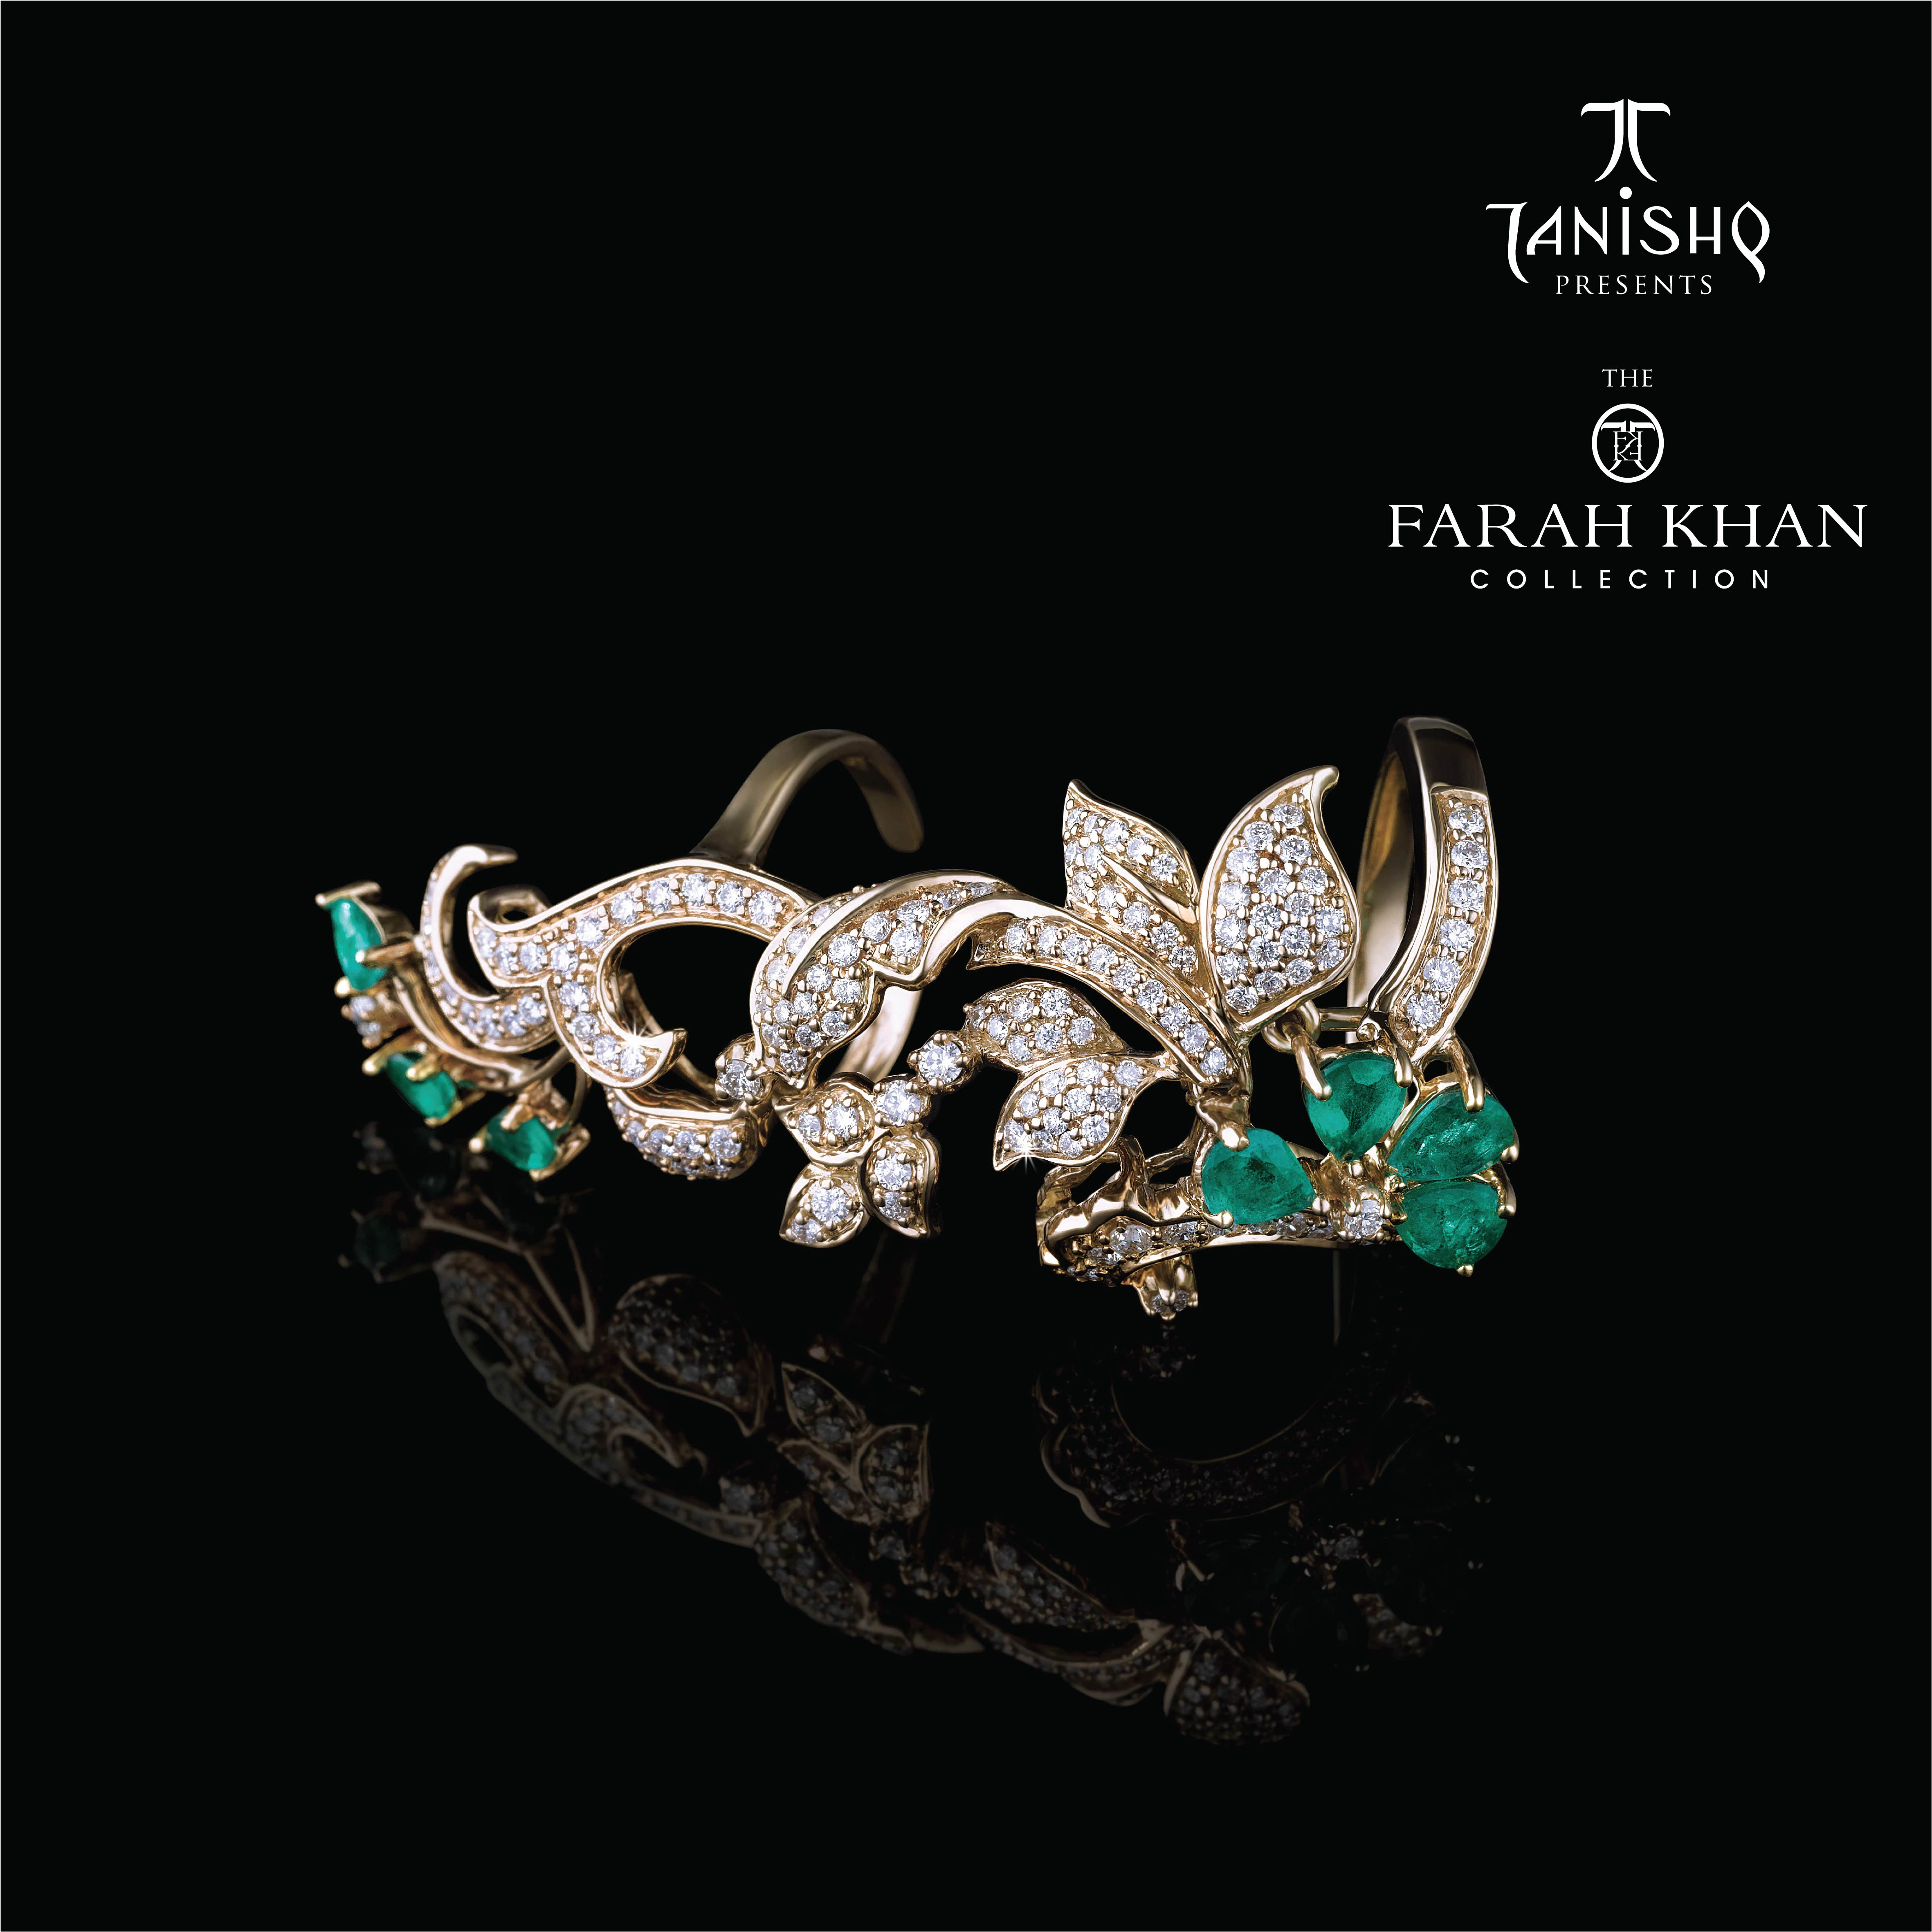 Tanishq Presents The Farah Khan Collection Truly